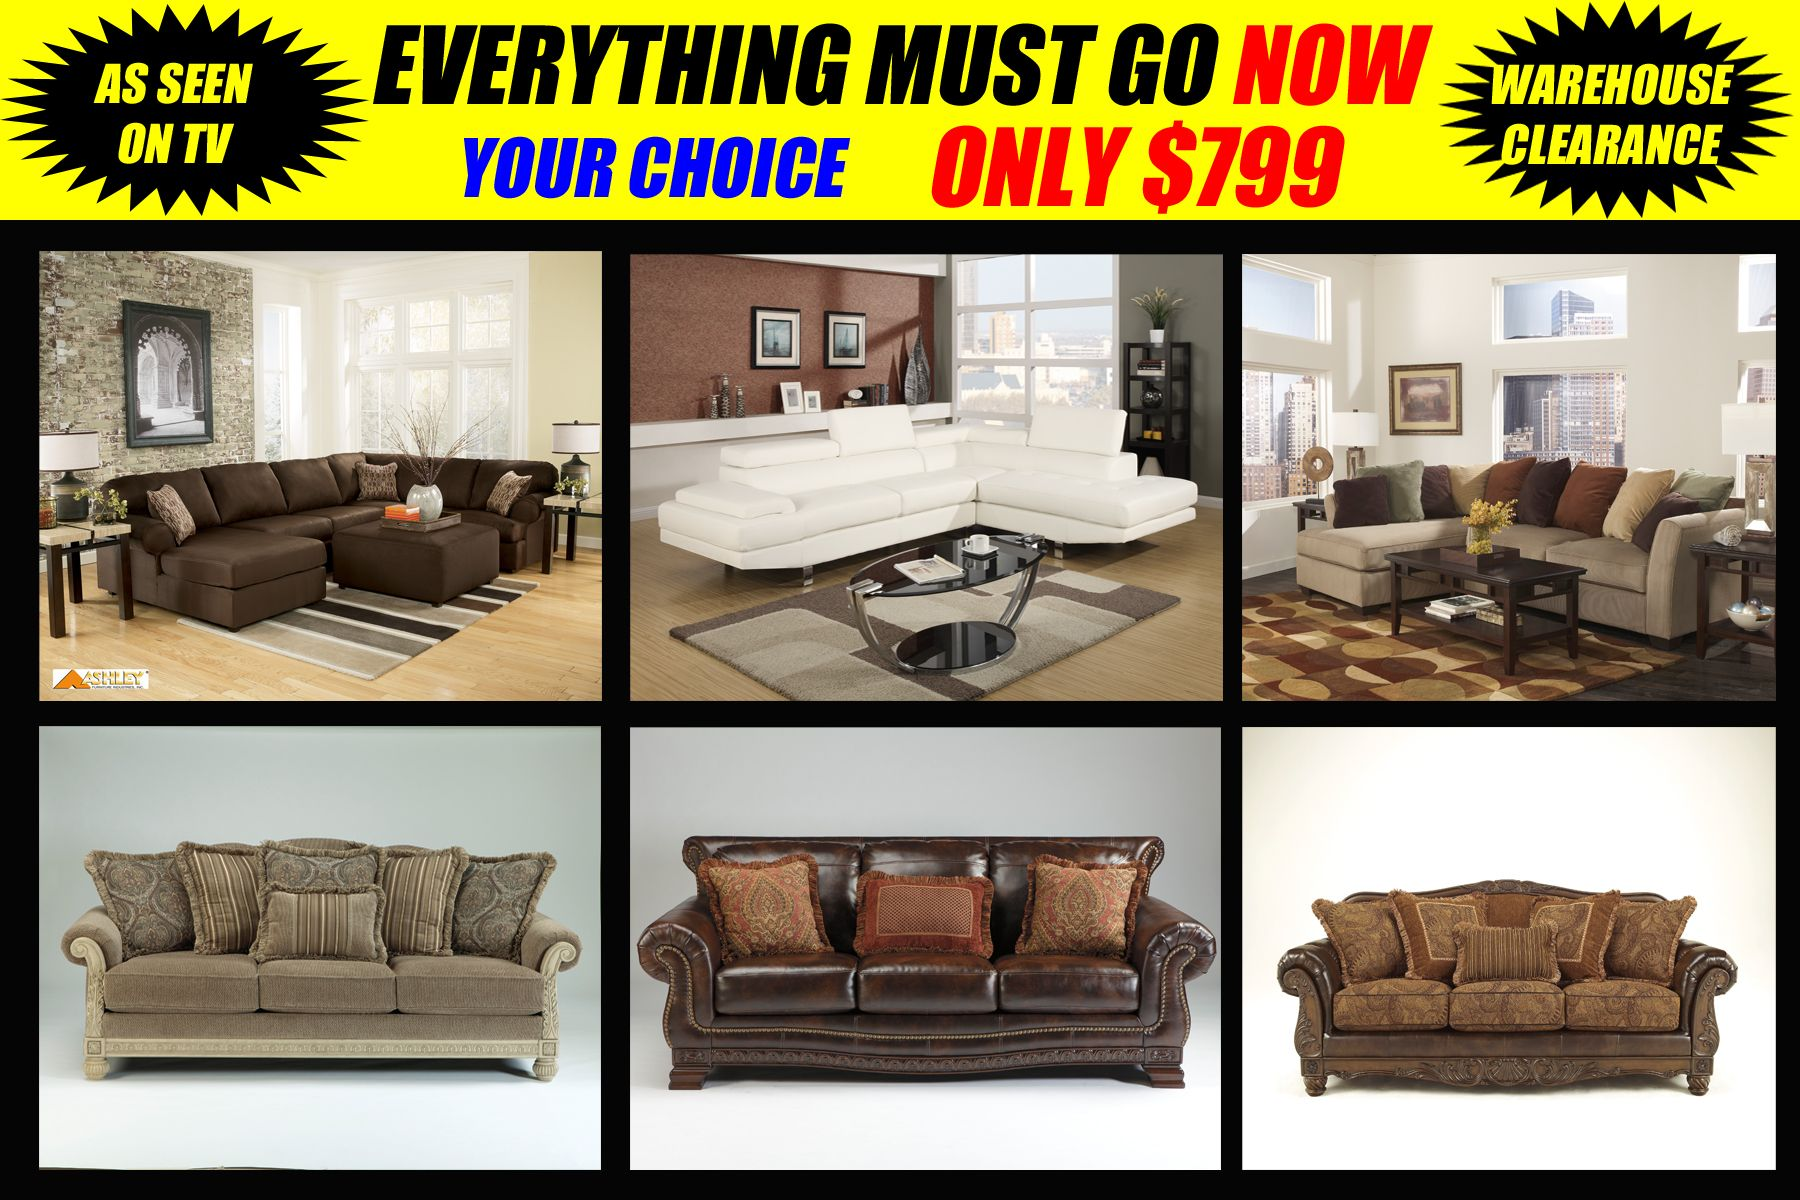 Visit our showrooms or buy online at  www.bestbuy-furniture.com 856-663-5558